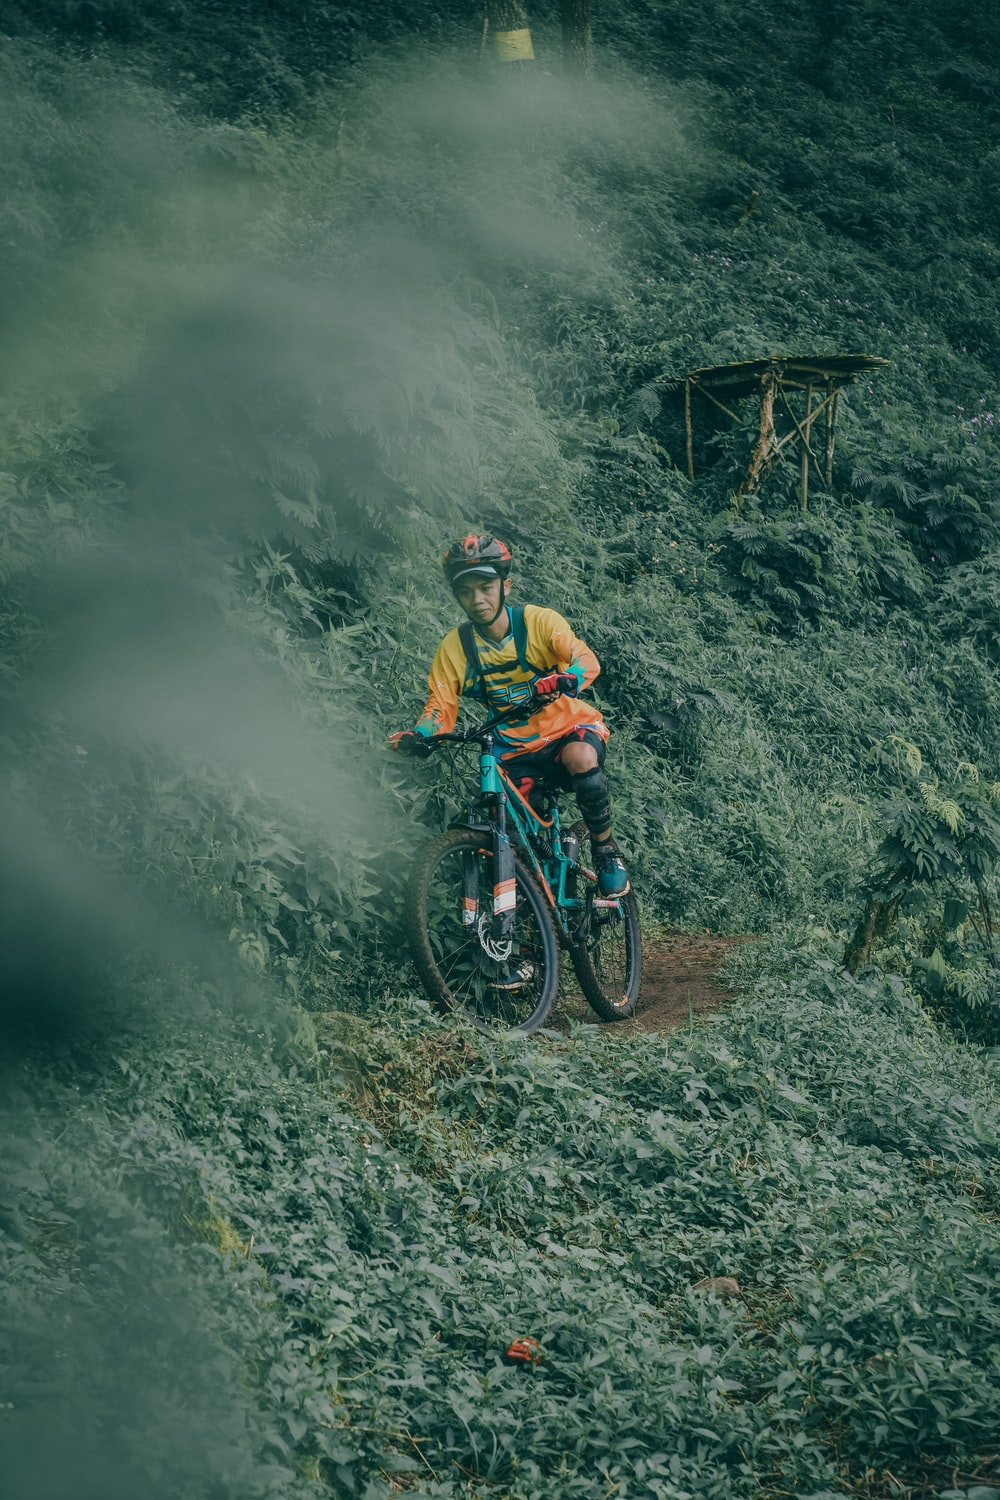 man riding teal full-suspension mountain bike on edge surrounded by green leaf plants